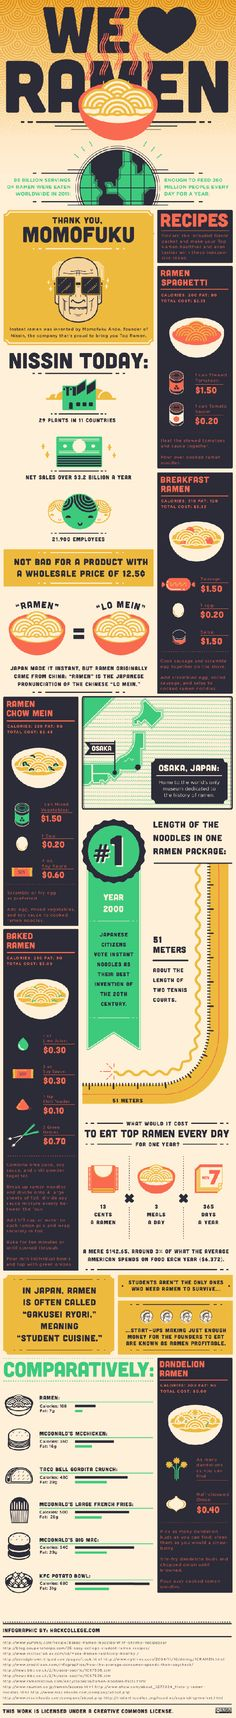 We Love Ramen, Everything You Need To Know About Instant Noodles